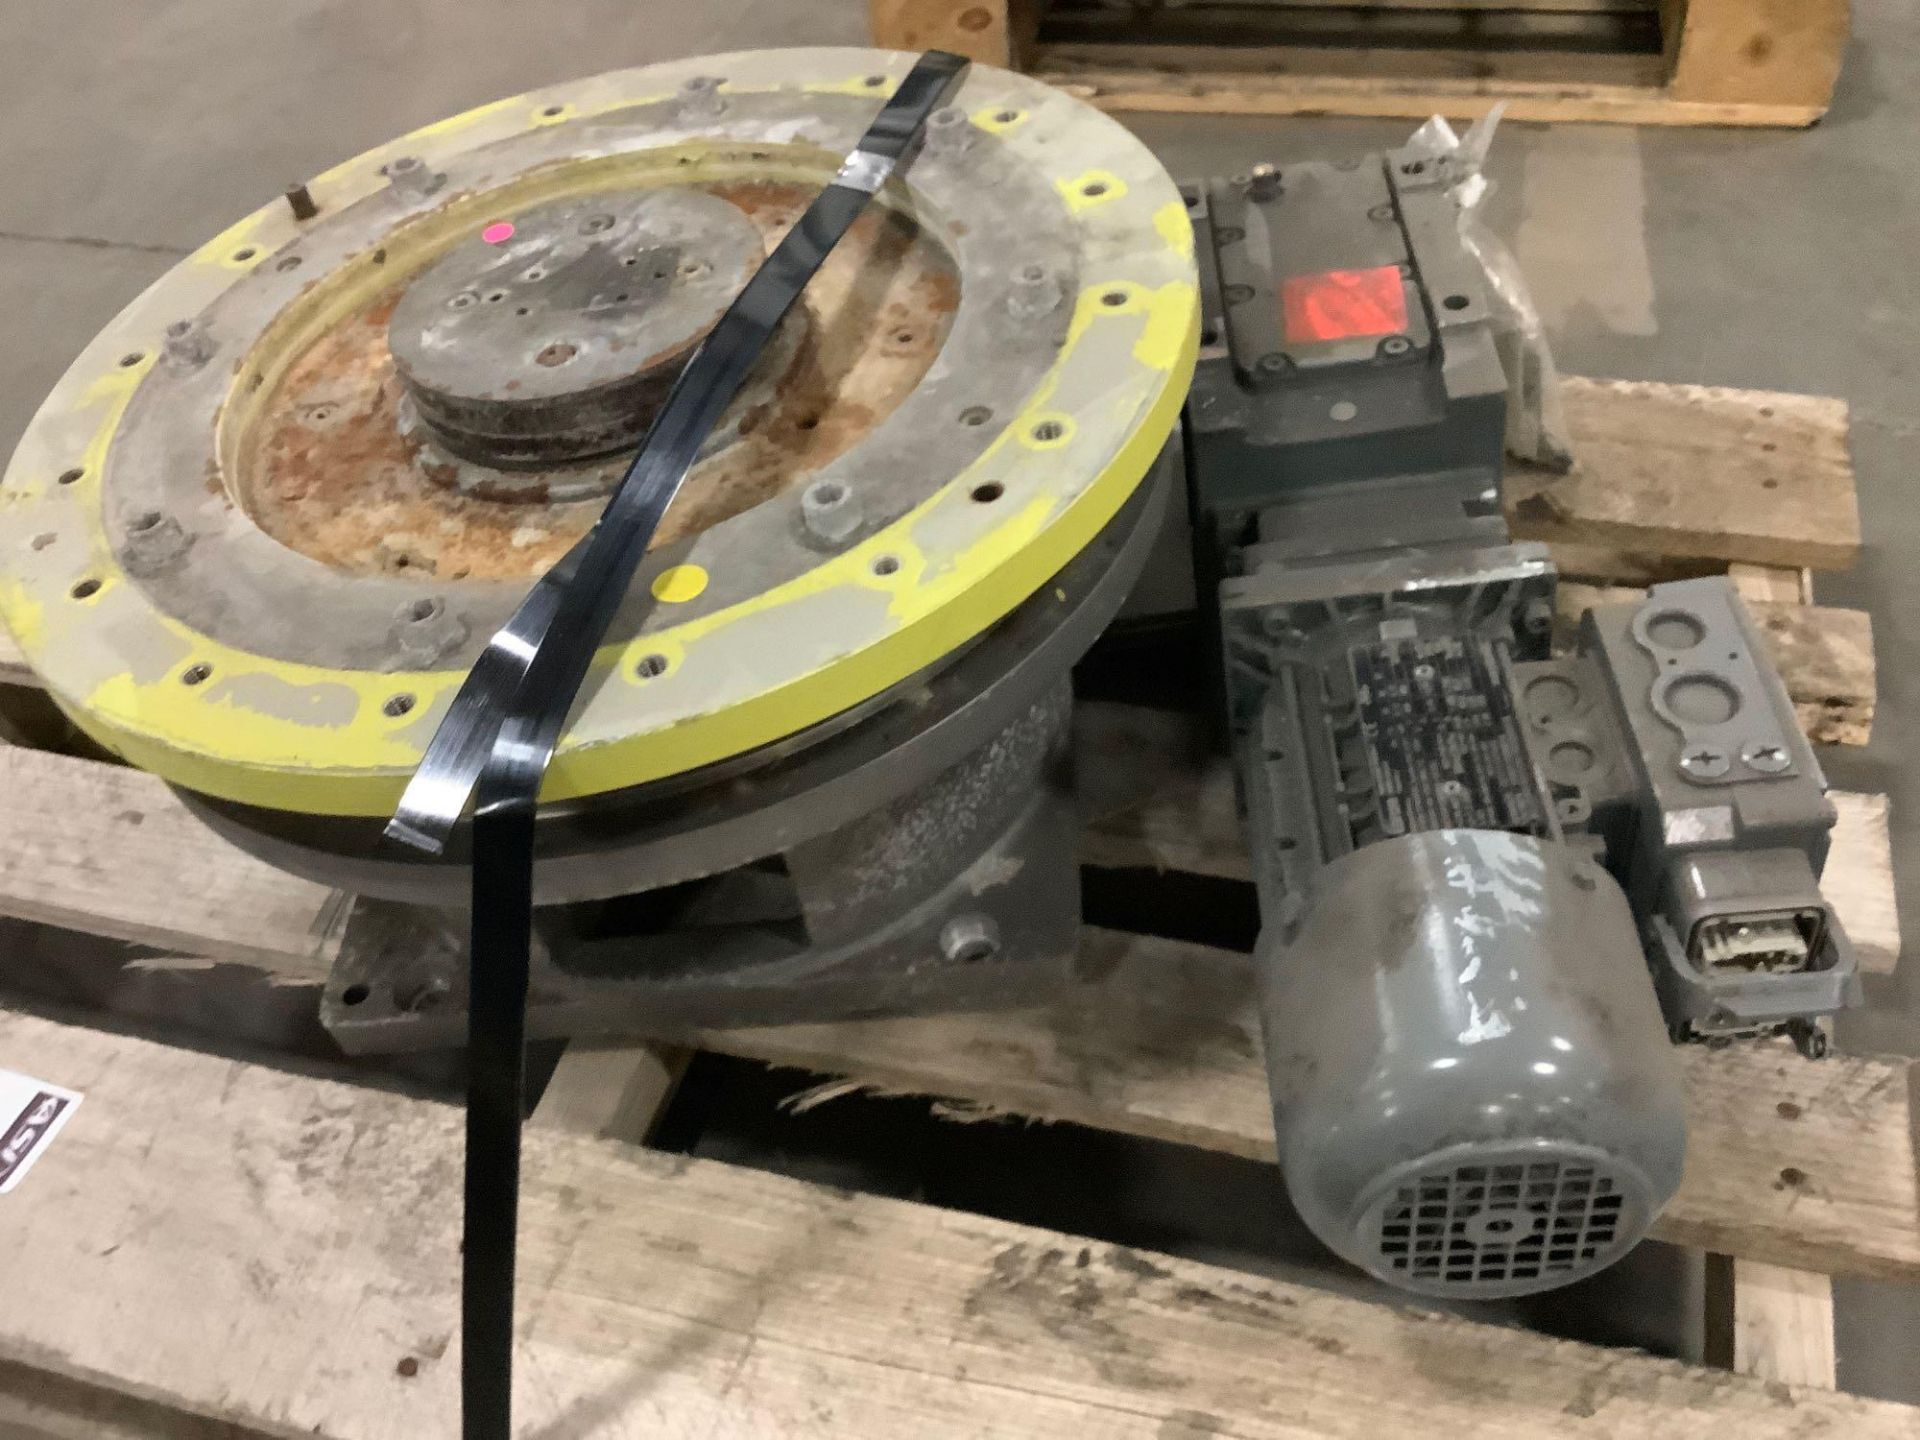 2013 LENZE FIBROTOR 150410-9-152-03-0-0-3 ROTARY TABLE MOTOR WITH MANUAL ATTACHED ( 5363 )